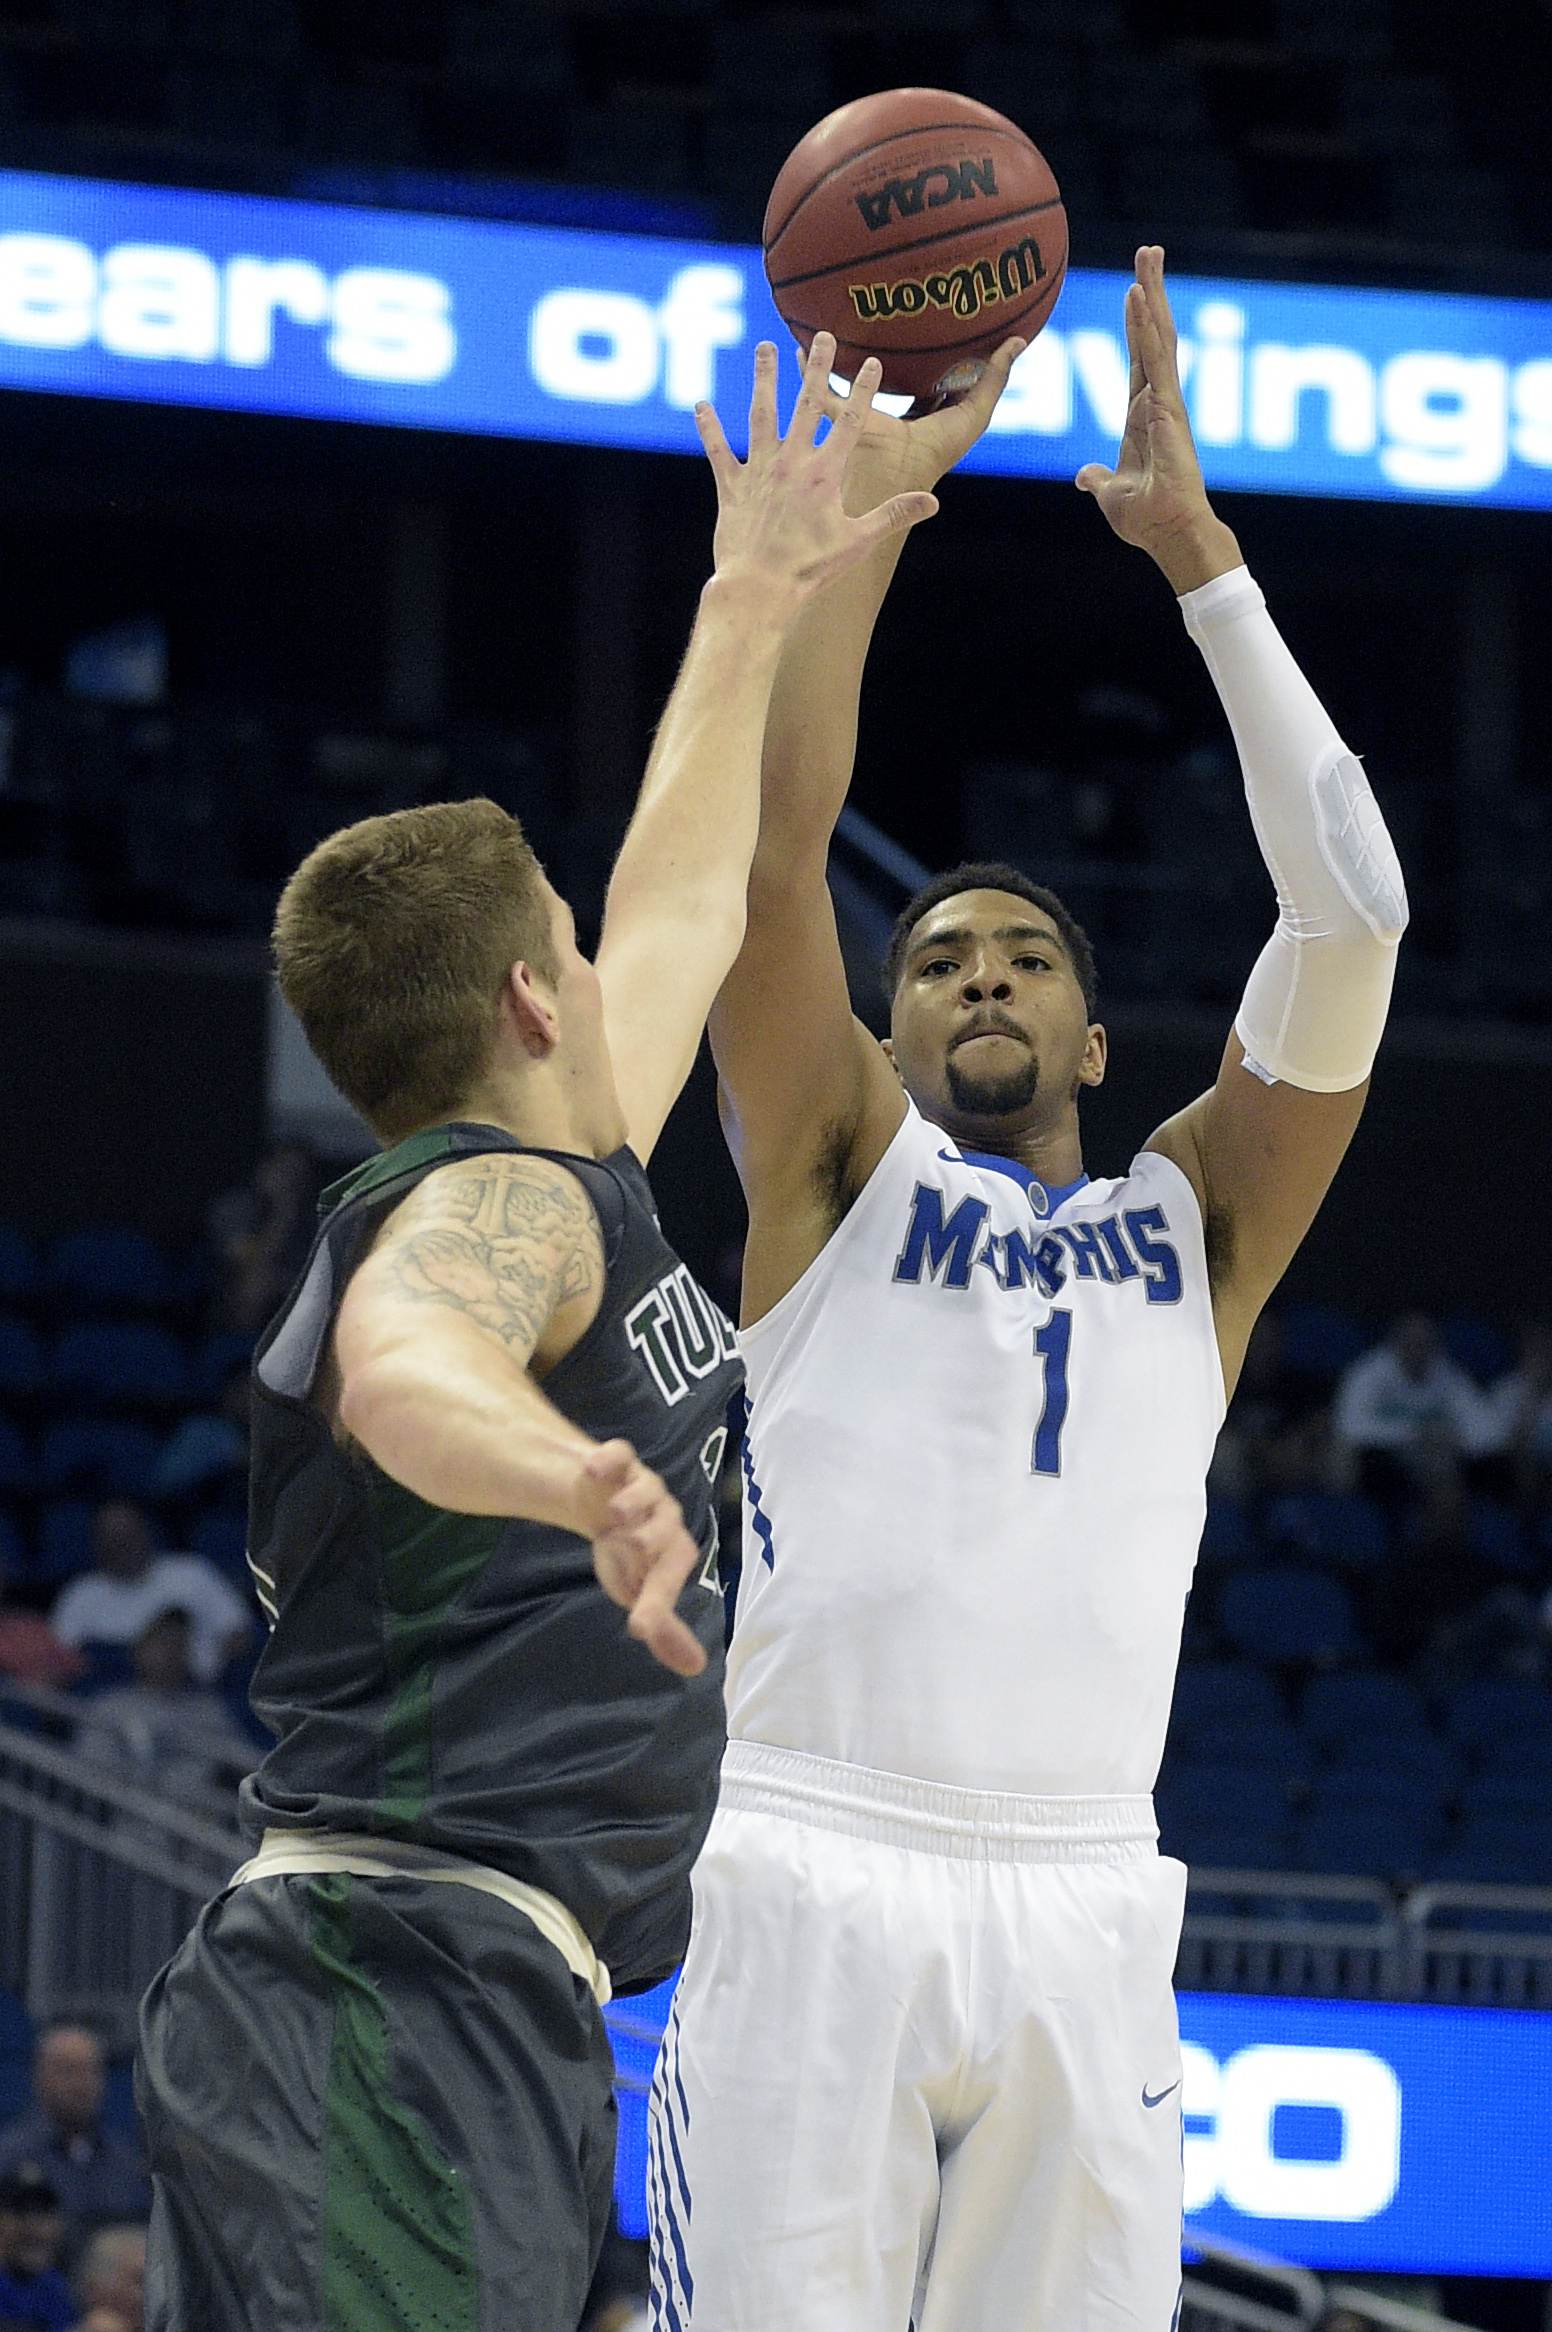 Memphis forward Dedric Lawson (1) goes up for a shot in front of Tulane forward Dylan Osetkowski (21) during the first half of an NCAA college basketball game in the semifinals of the American Athletic Conference men's tournament in Orlando, Fla., Saturda